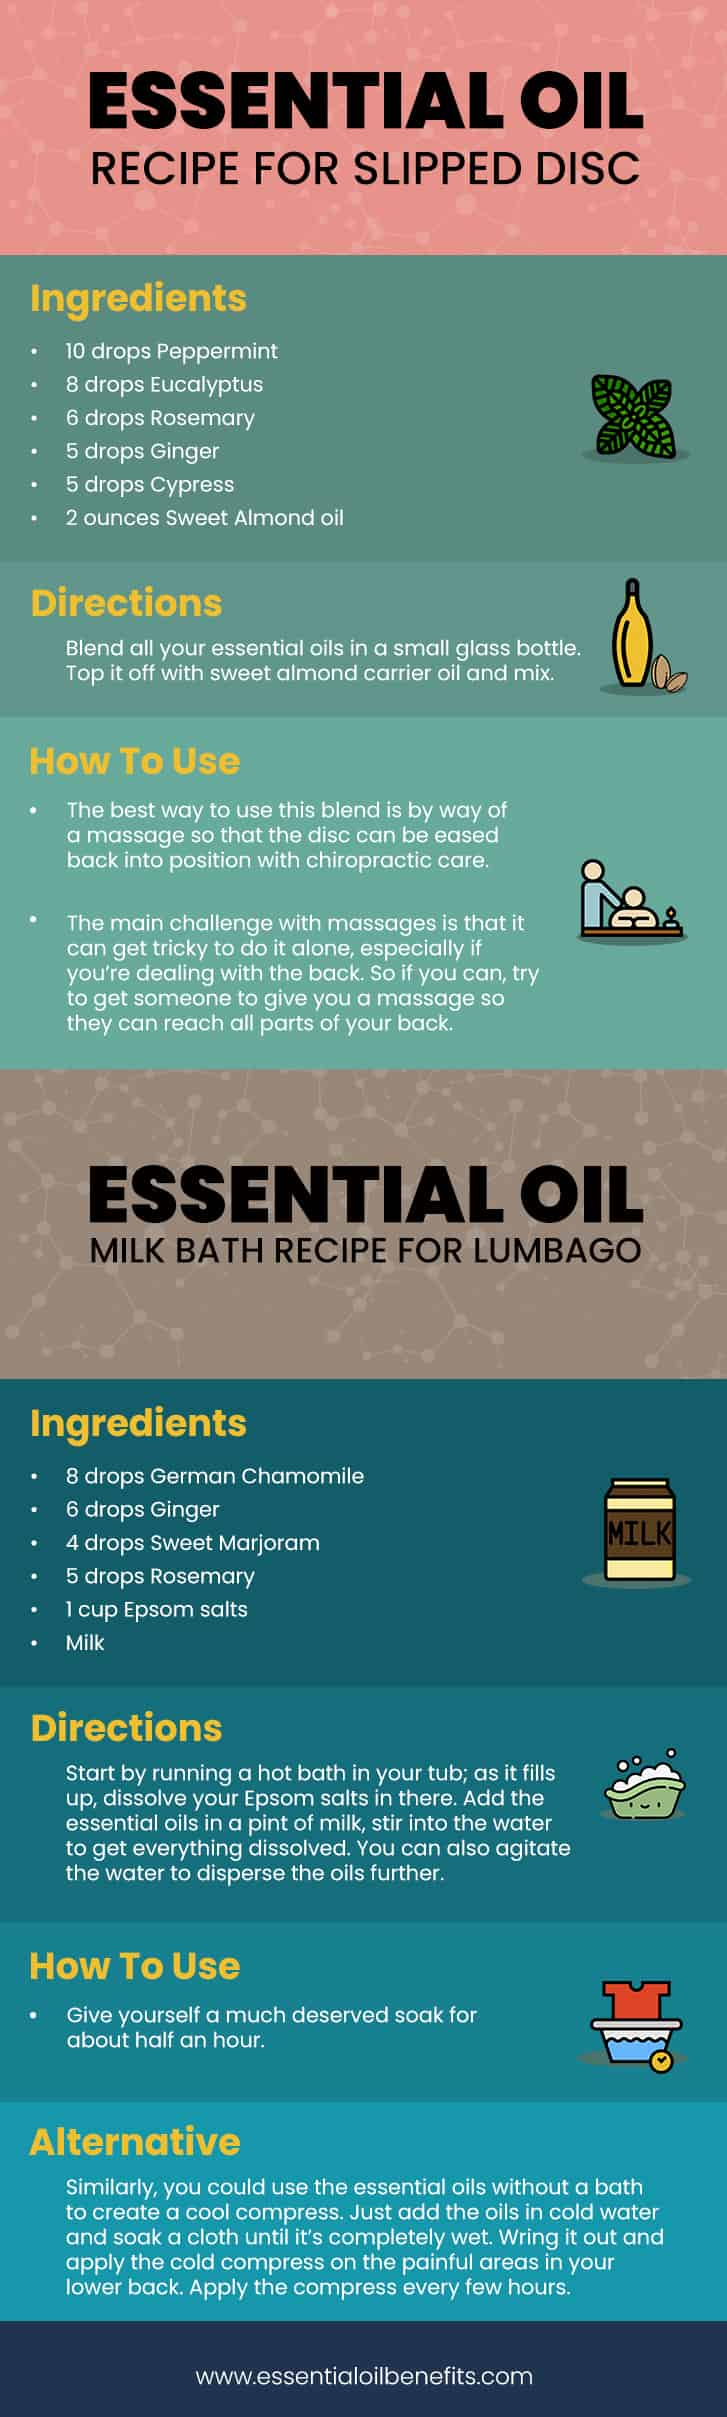 How To Use Essential Oils For Sciatica Pain? | Essential Oil Benefits